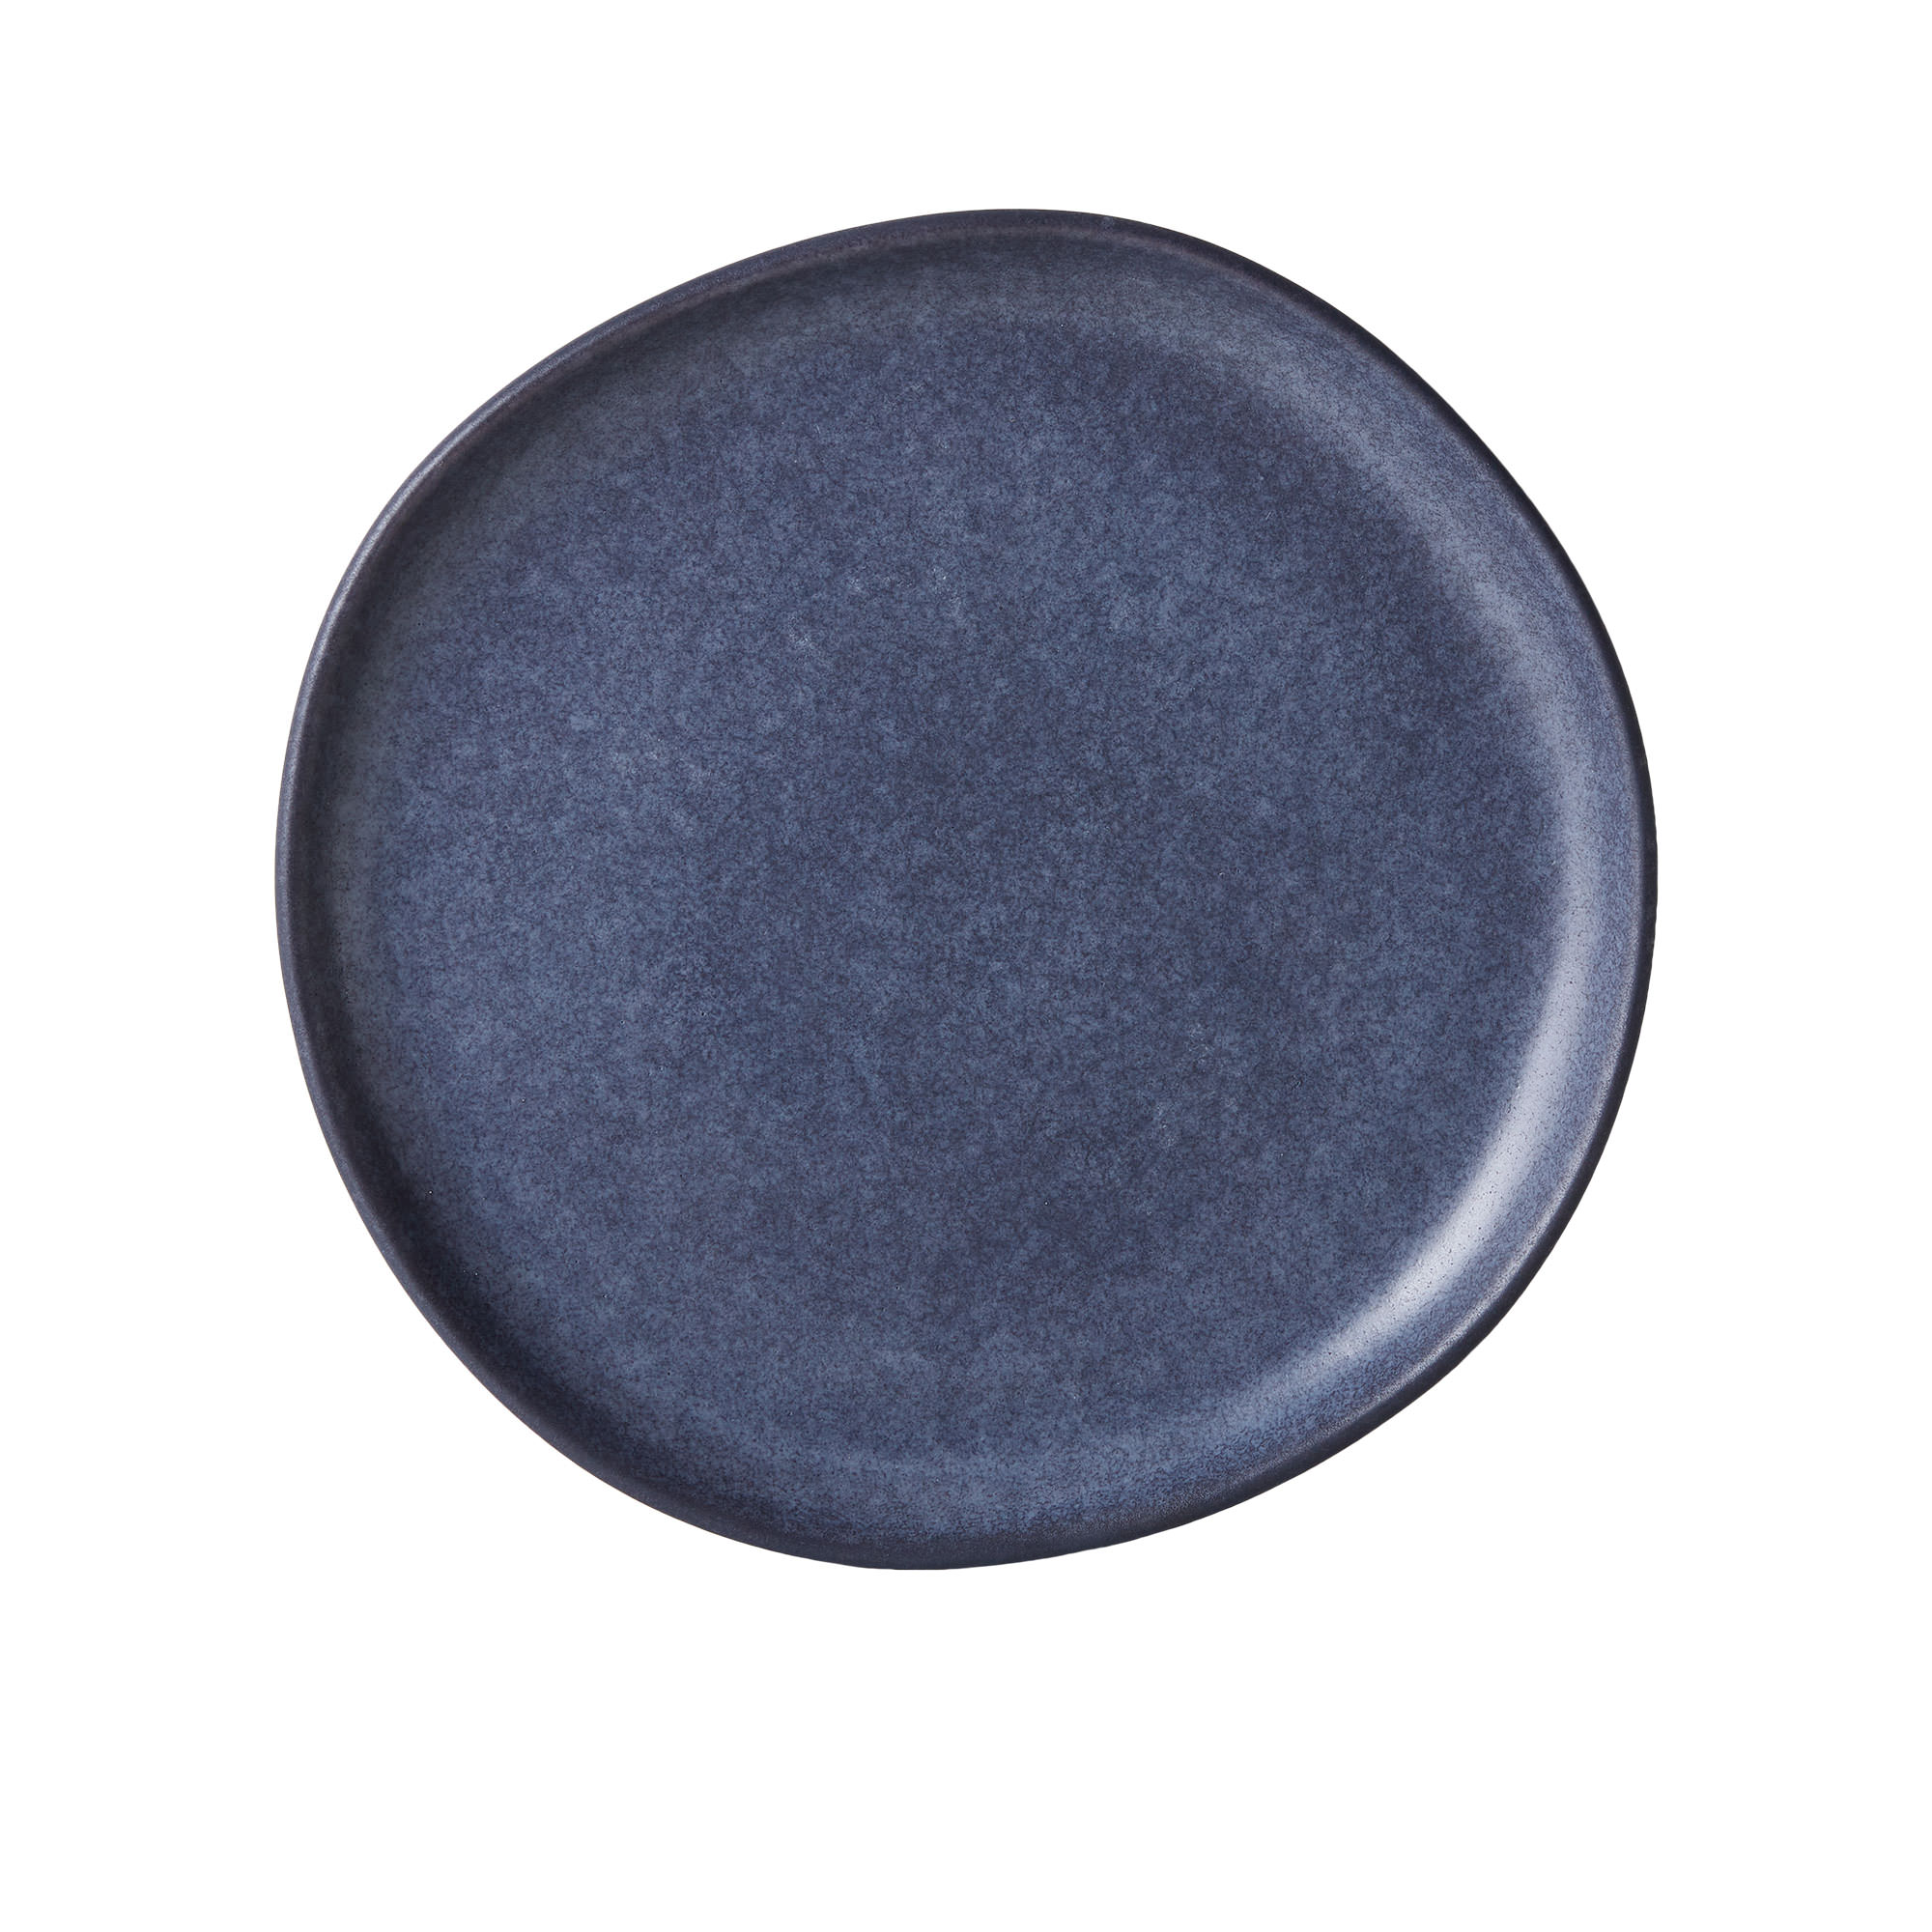 Salisbury & Co Capri Plate 20.5cm Dark Blue